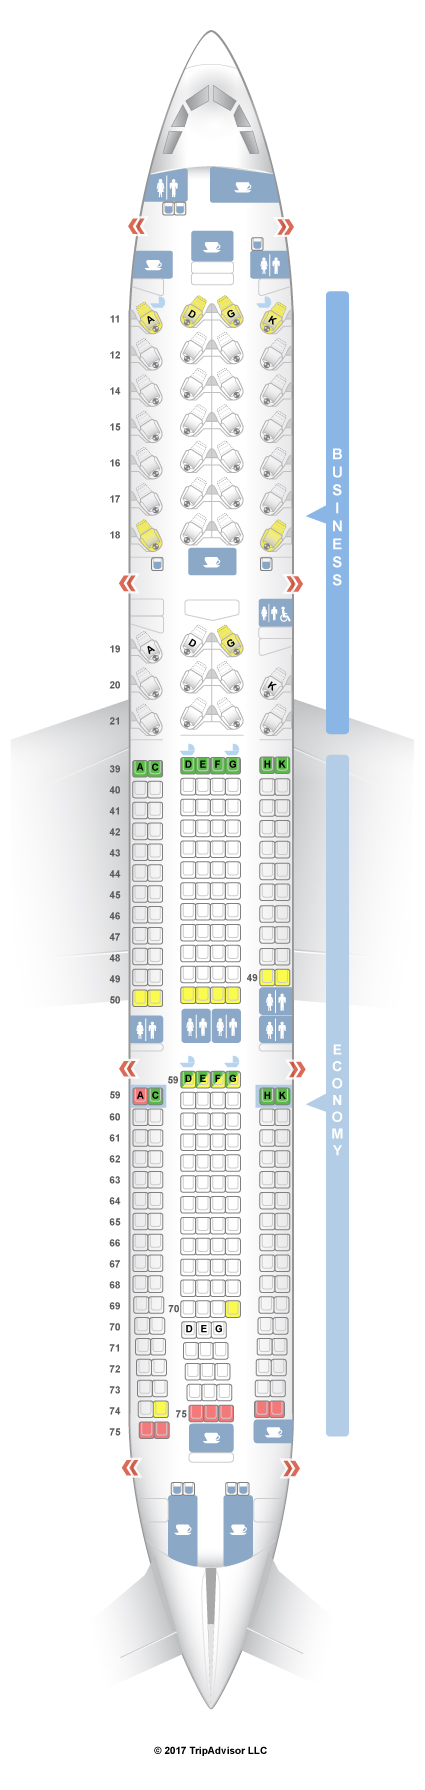 cathay pacific a330 300 seat map Seatguru Seat Map Cathay Pacific Seatguru cathay pacific a330 300 seat map